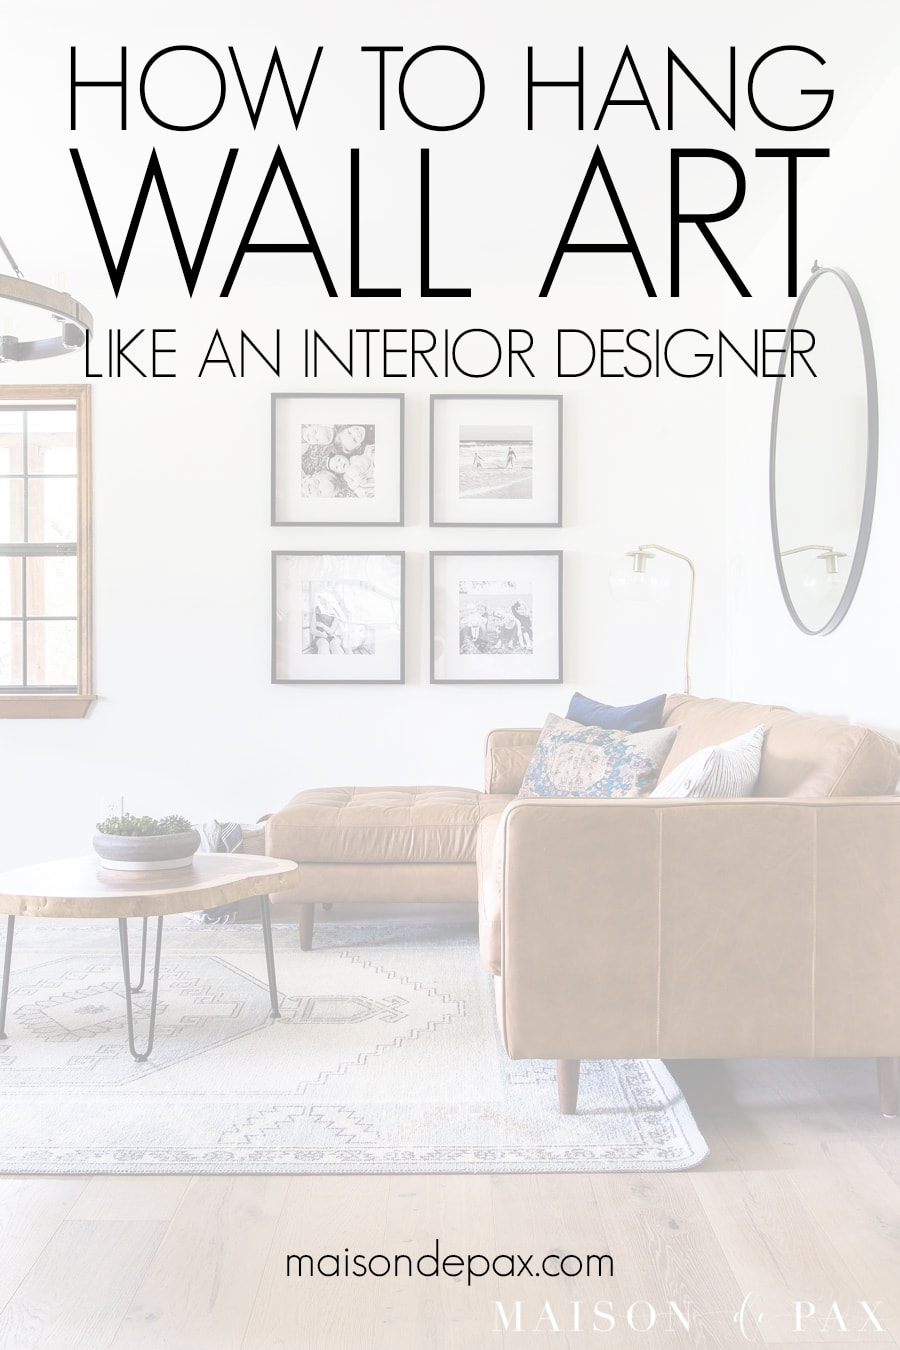 living room with gallery wall - how to hang wall art like an interior designer